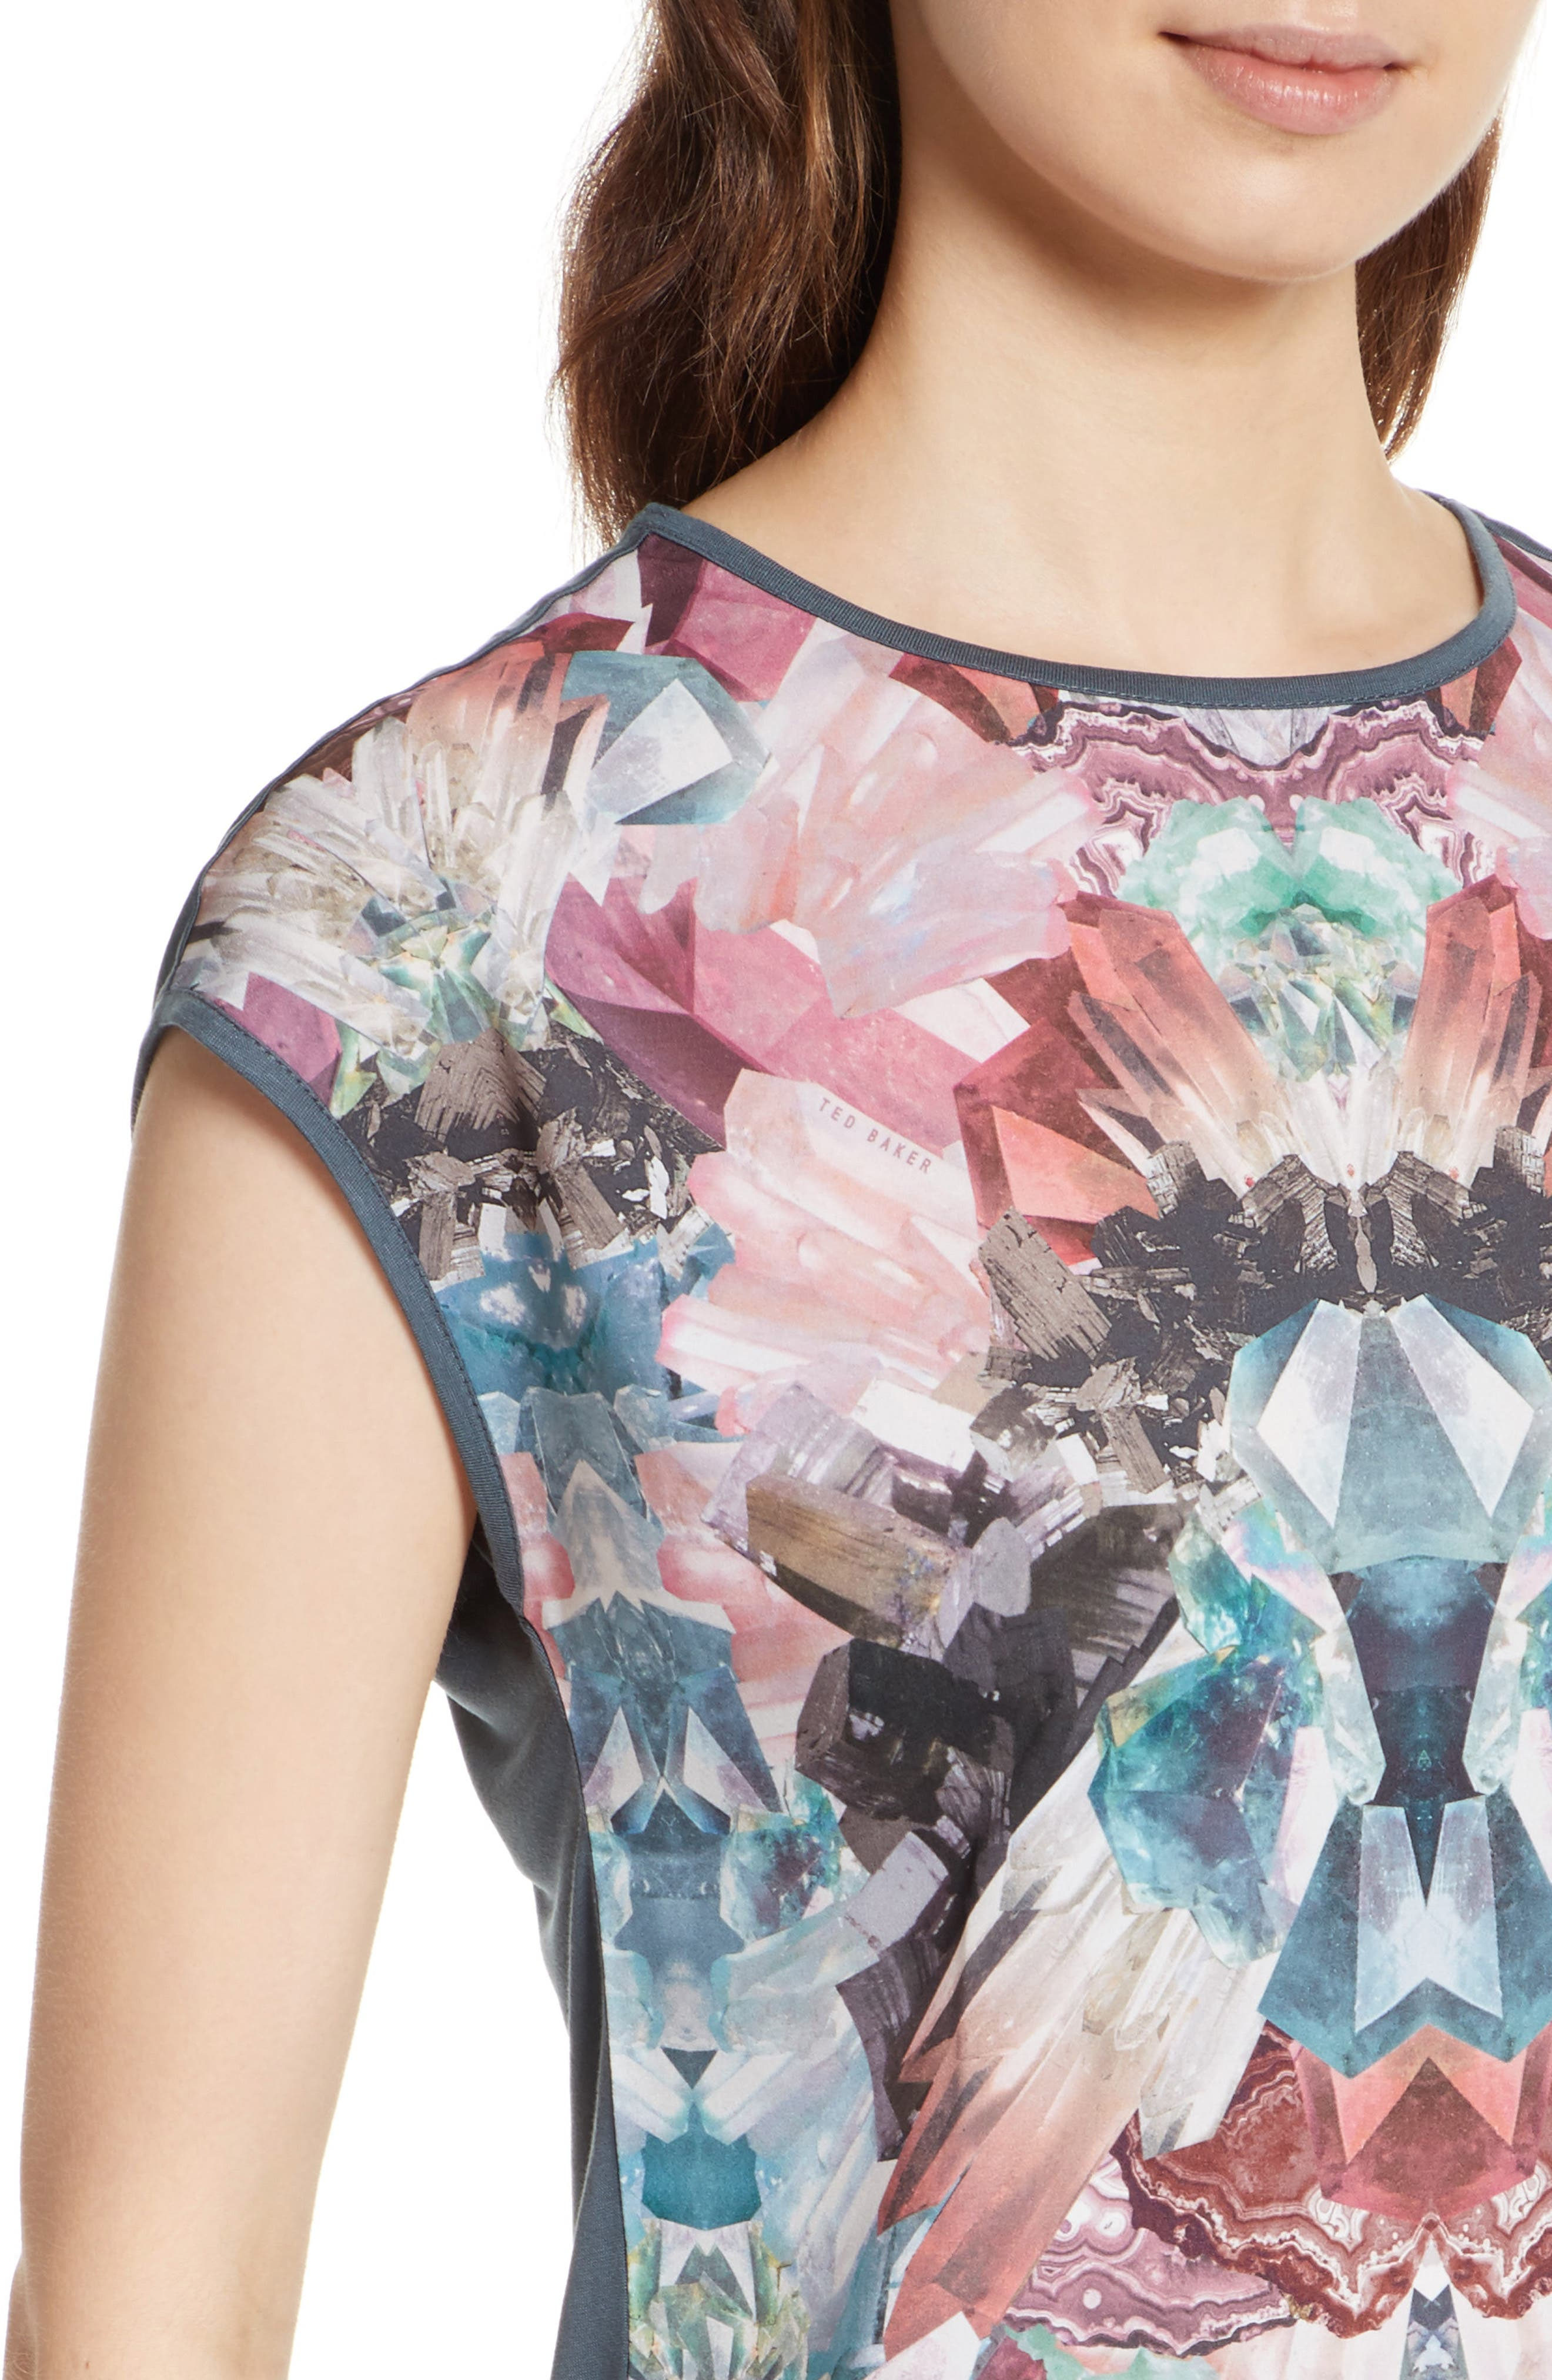 Mirrored Minerals Mixed Media Tee,                             Alternate thumbnail 4, color,                             021